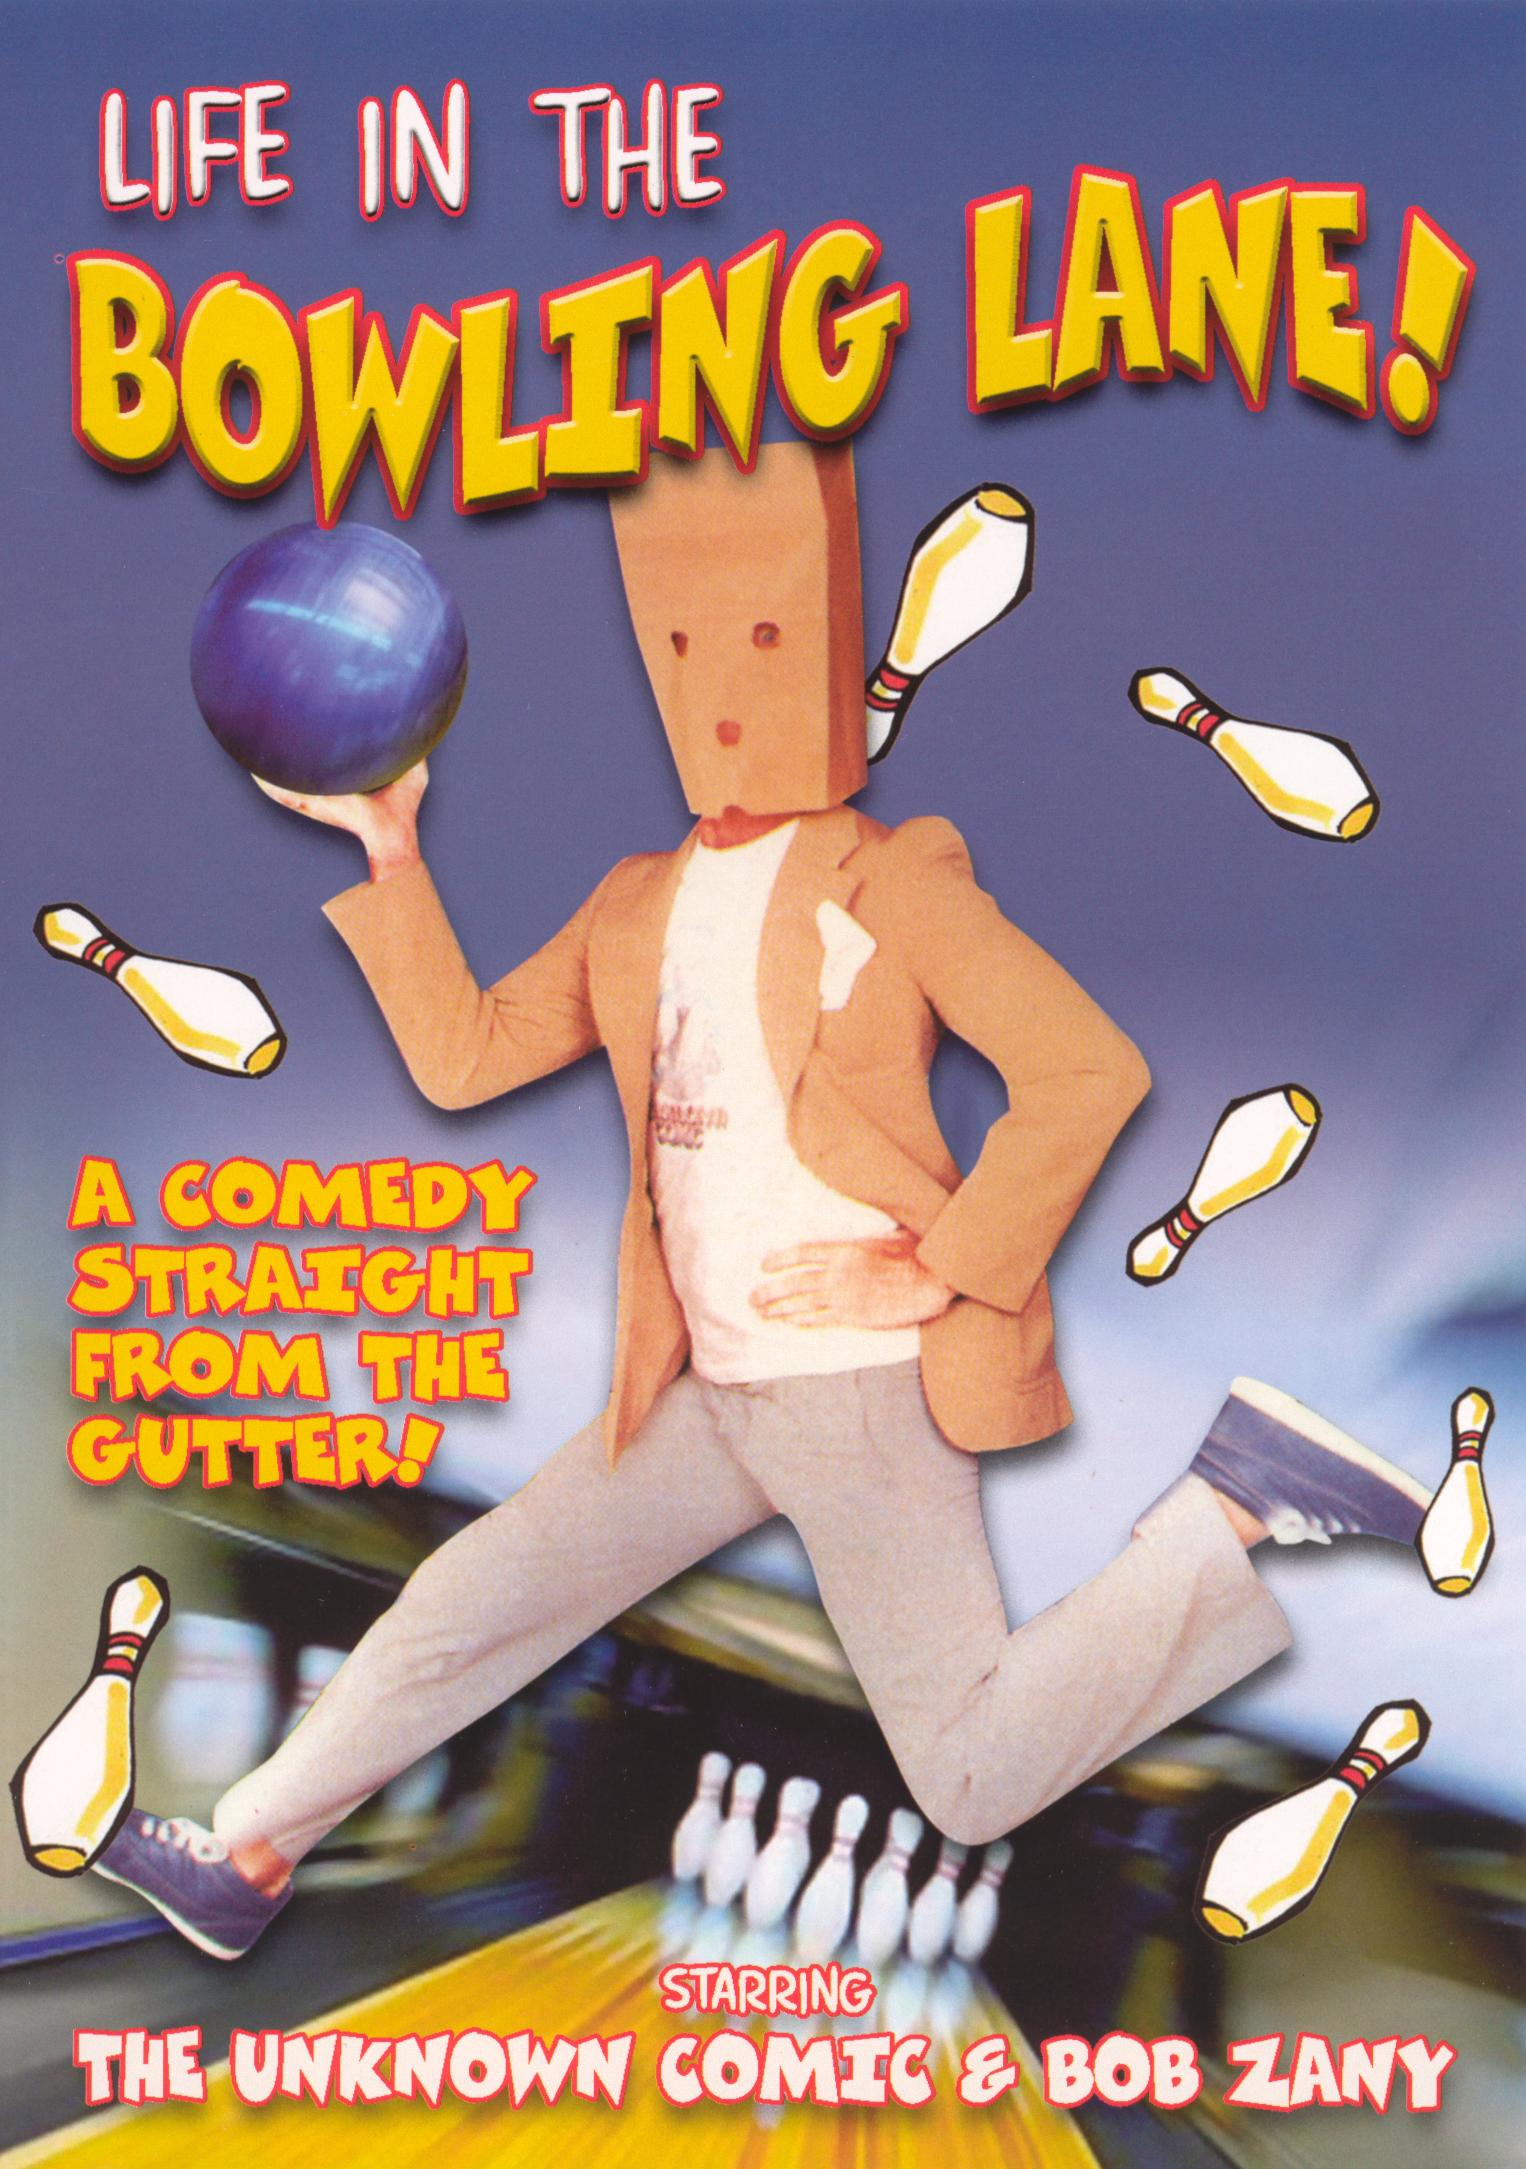 Life In the Bowling Lane